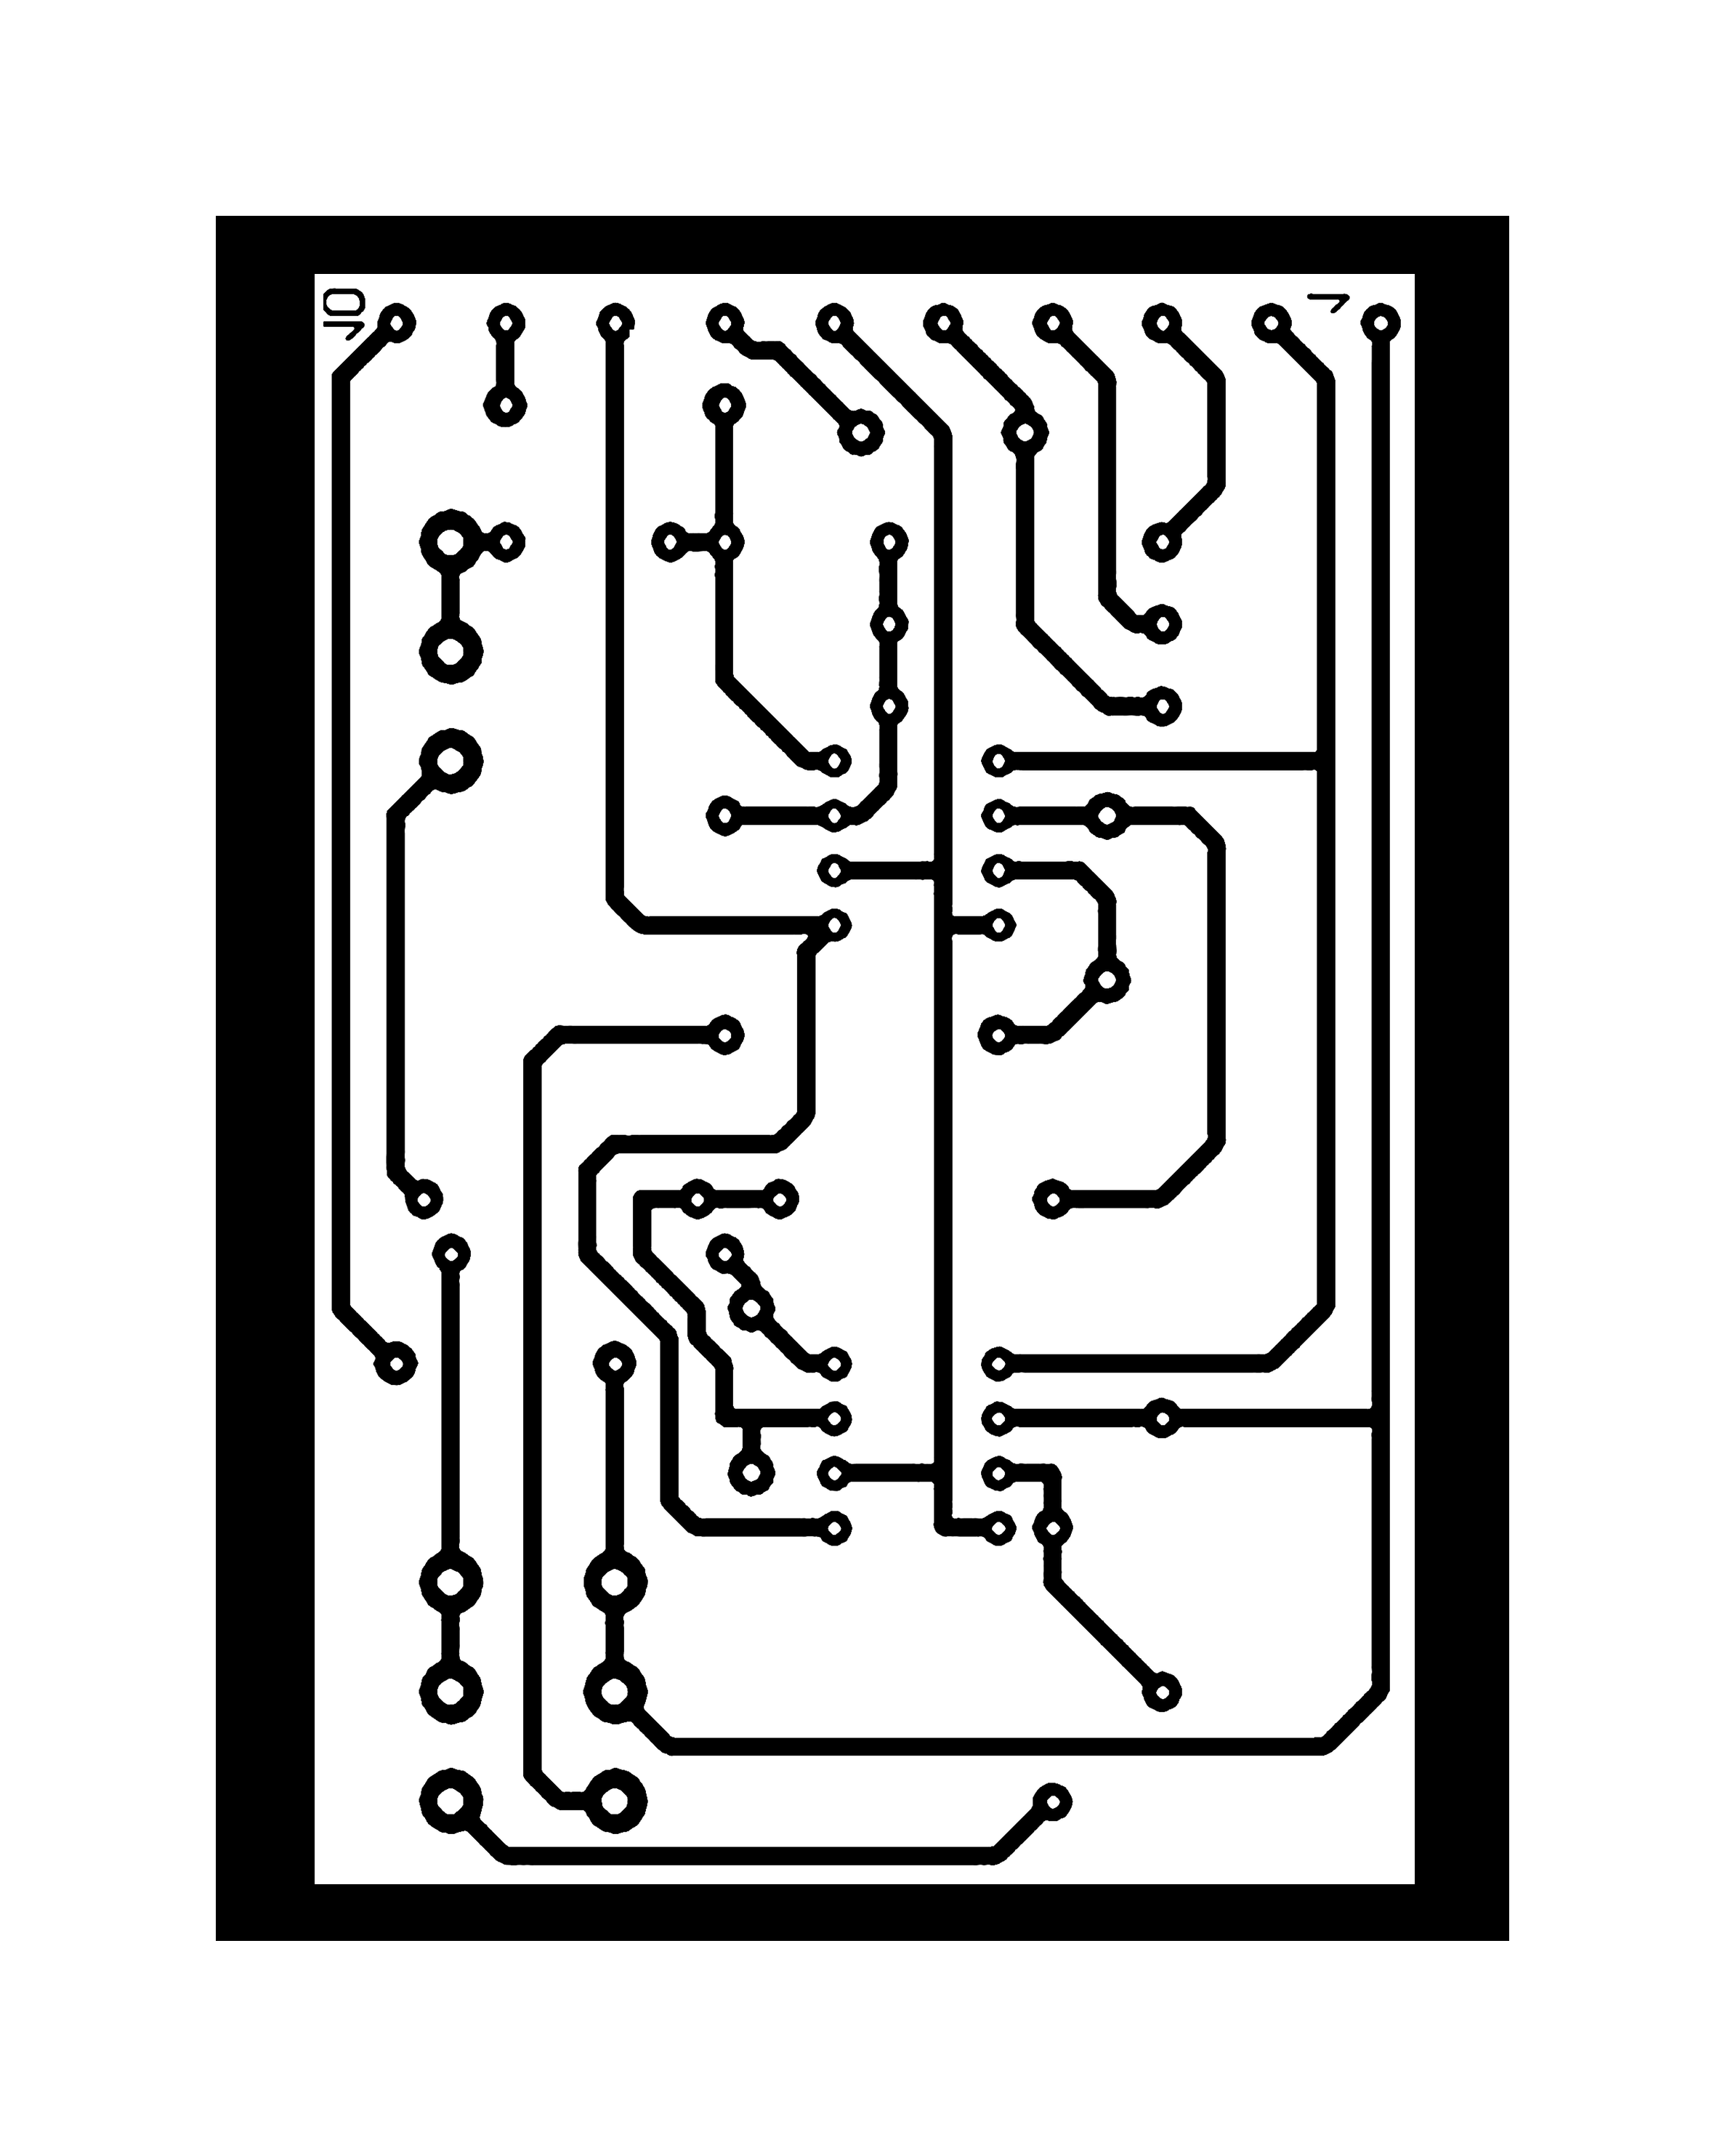 Switchable Notch Filter After Dj6hp First Published 1974 By Circuit Diagram Makibox850 Nov 13 2018 View Original